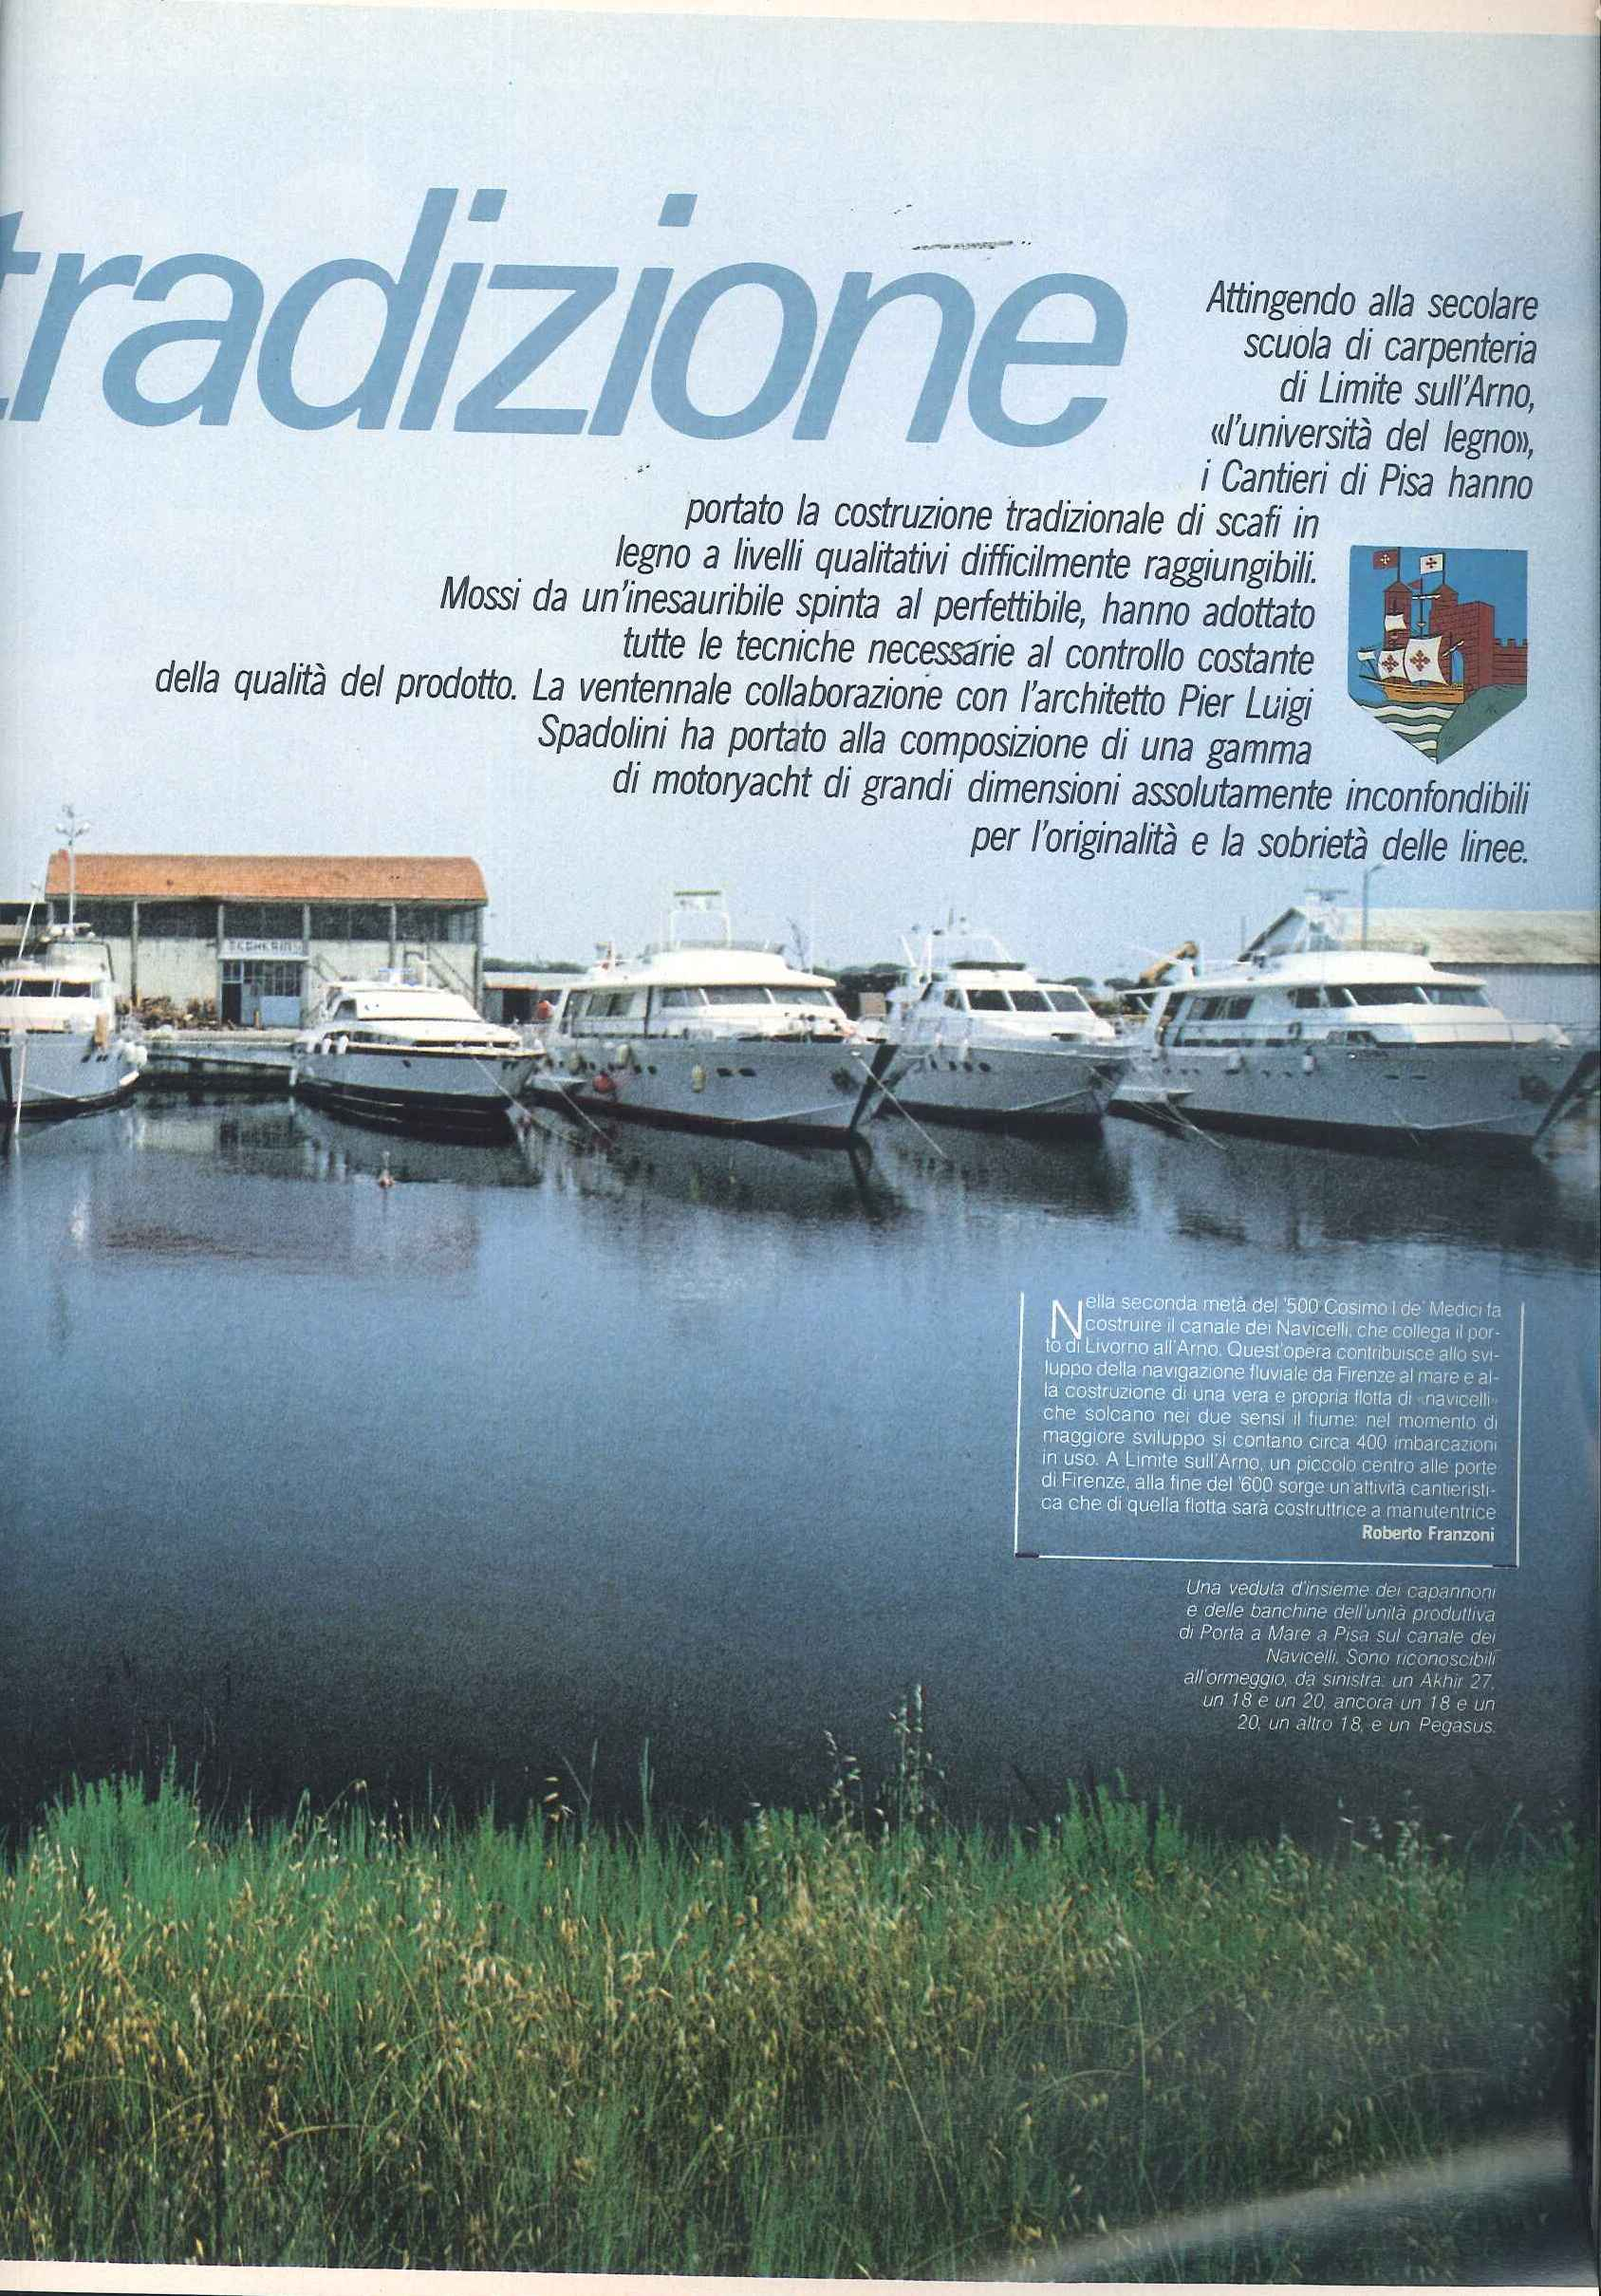 1982 07-08 PRESS CANTIERI DI PISA UOMO MARE 59 (37).jpg